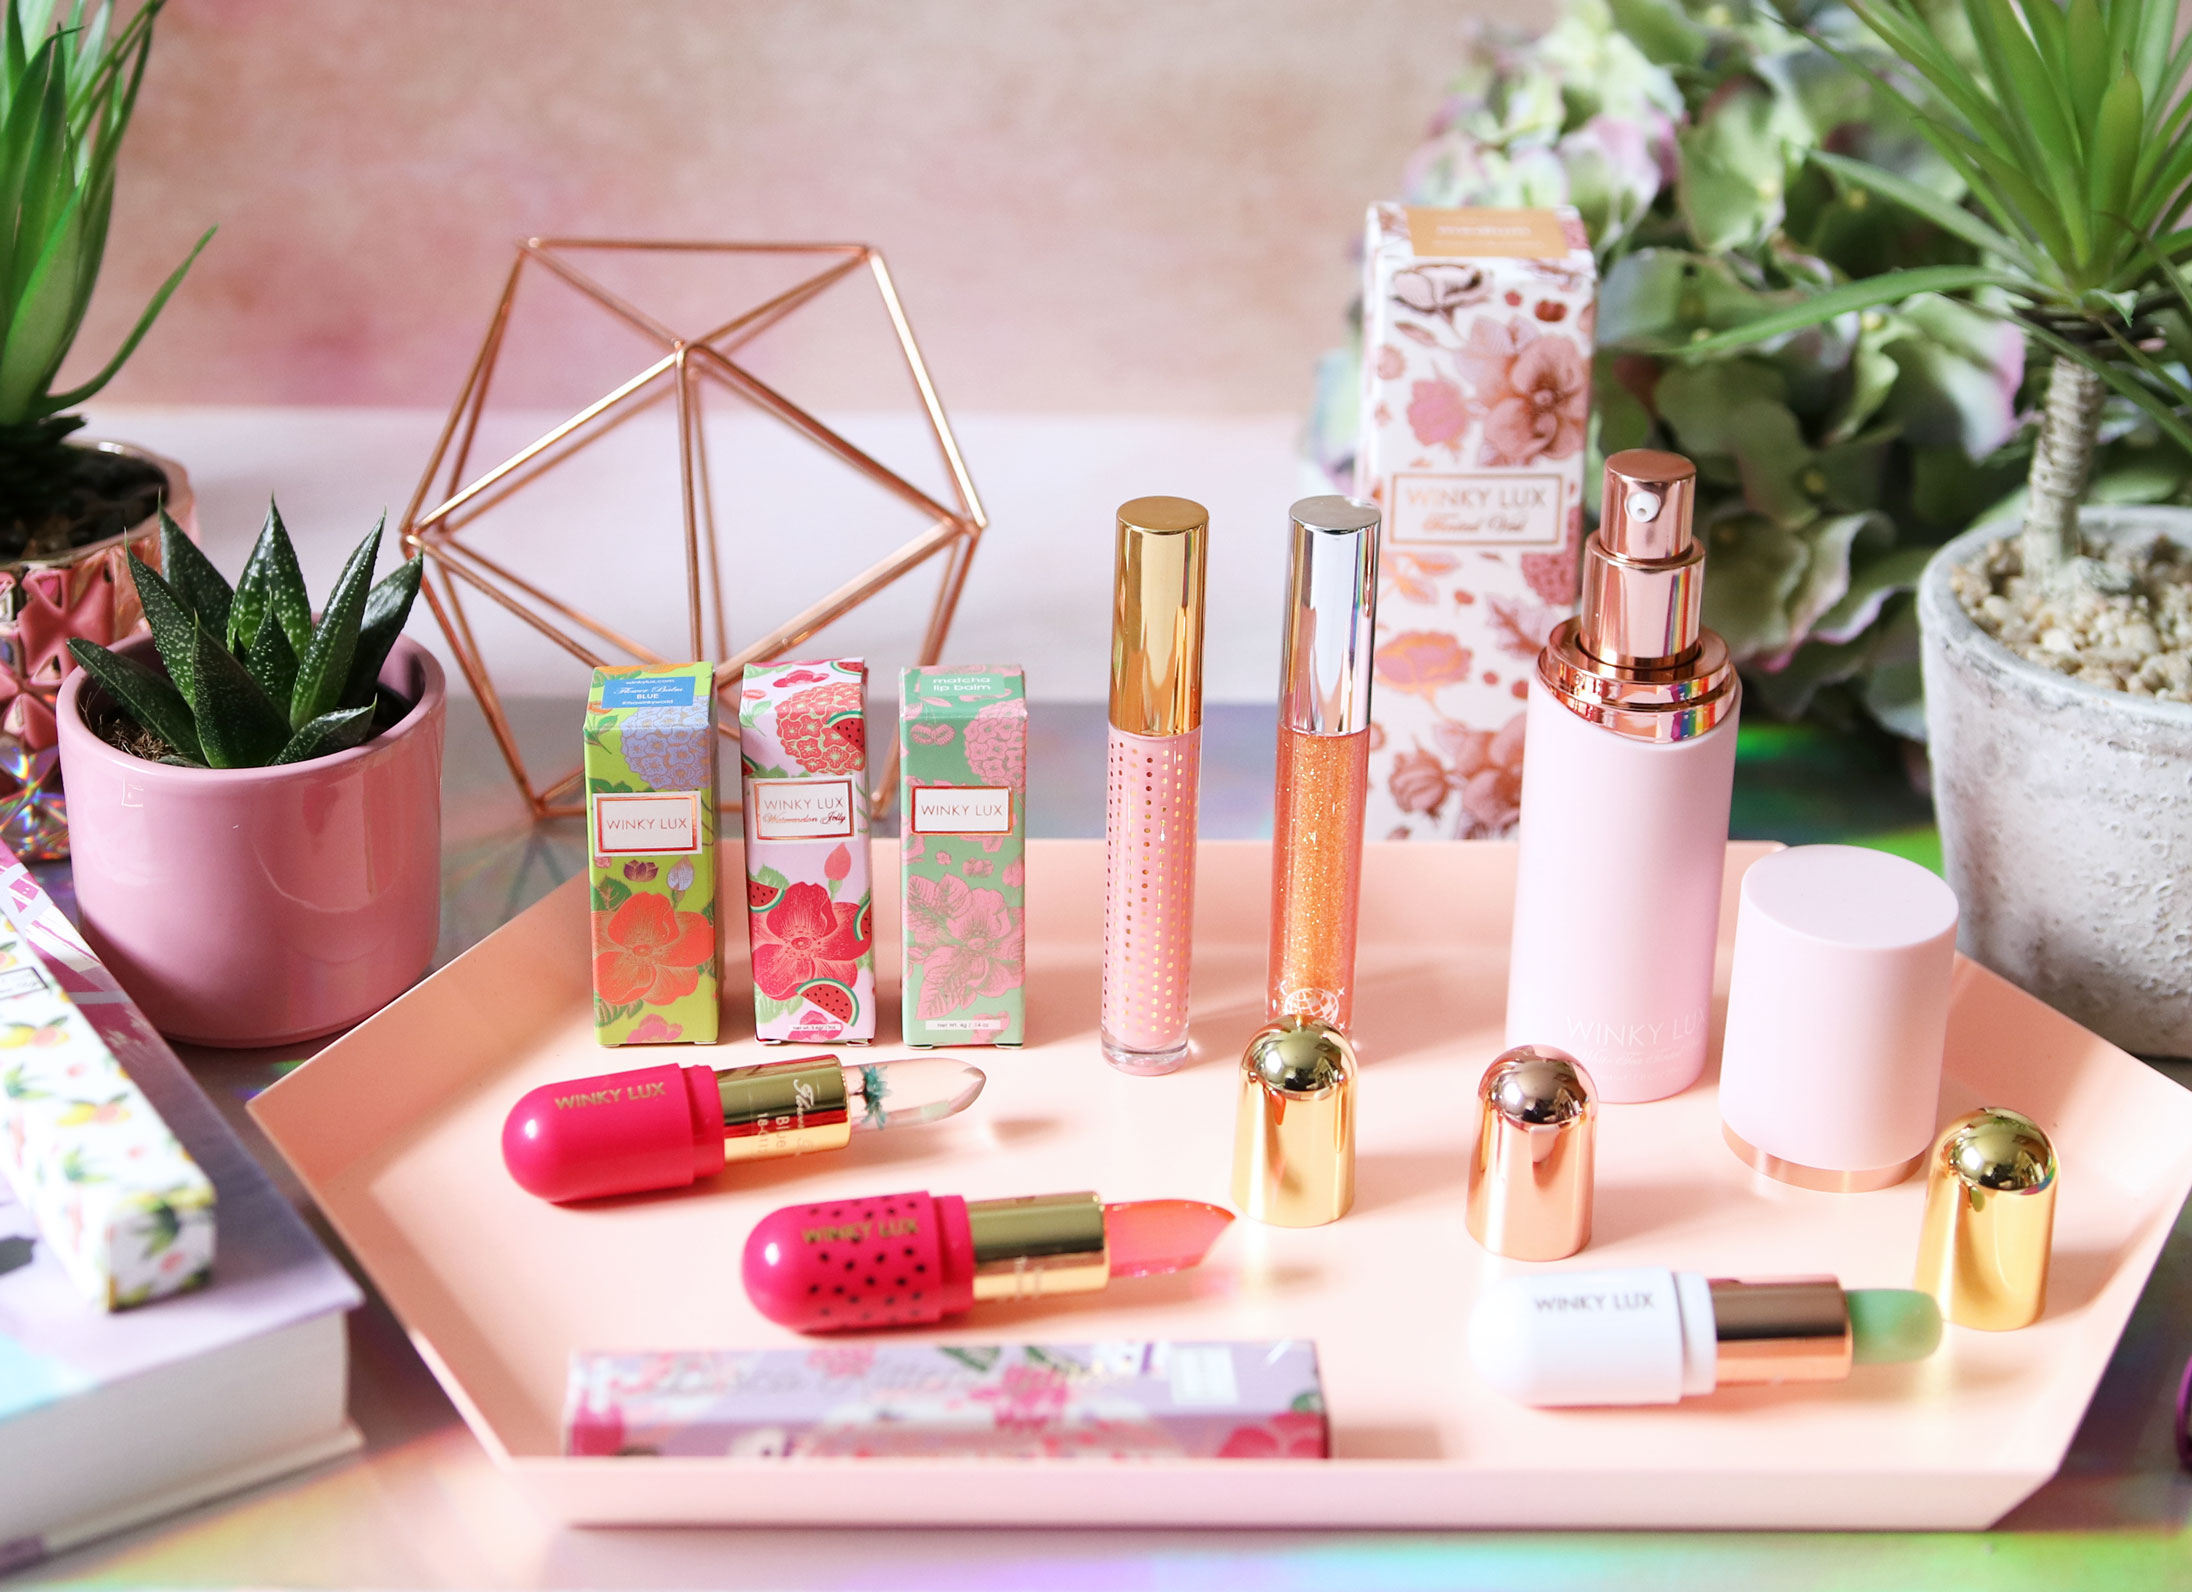 New Launches from Winky Lux!